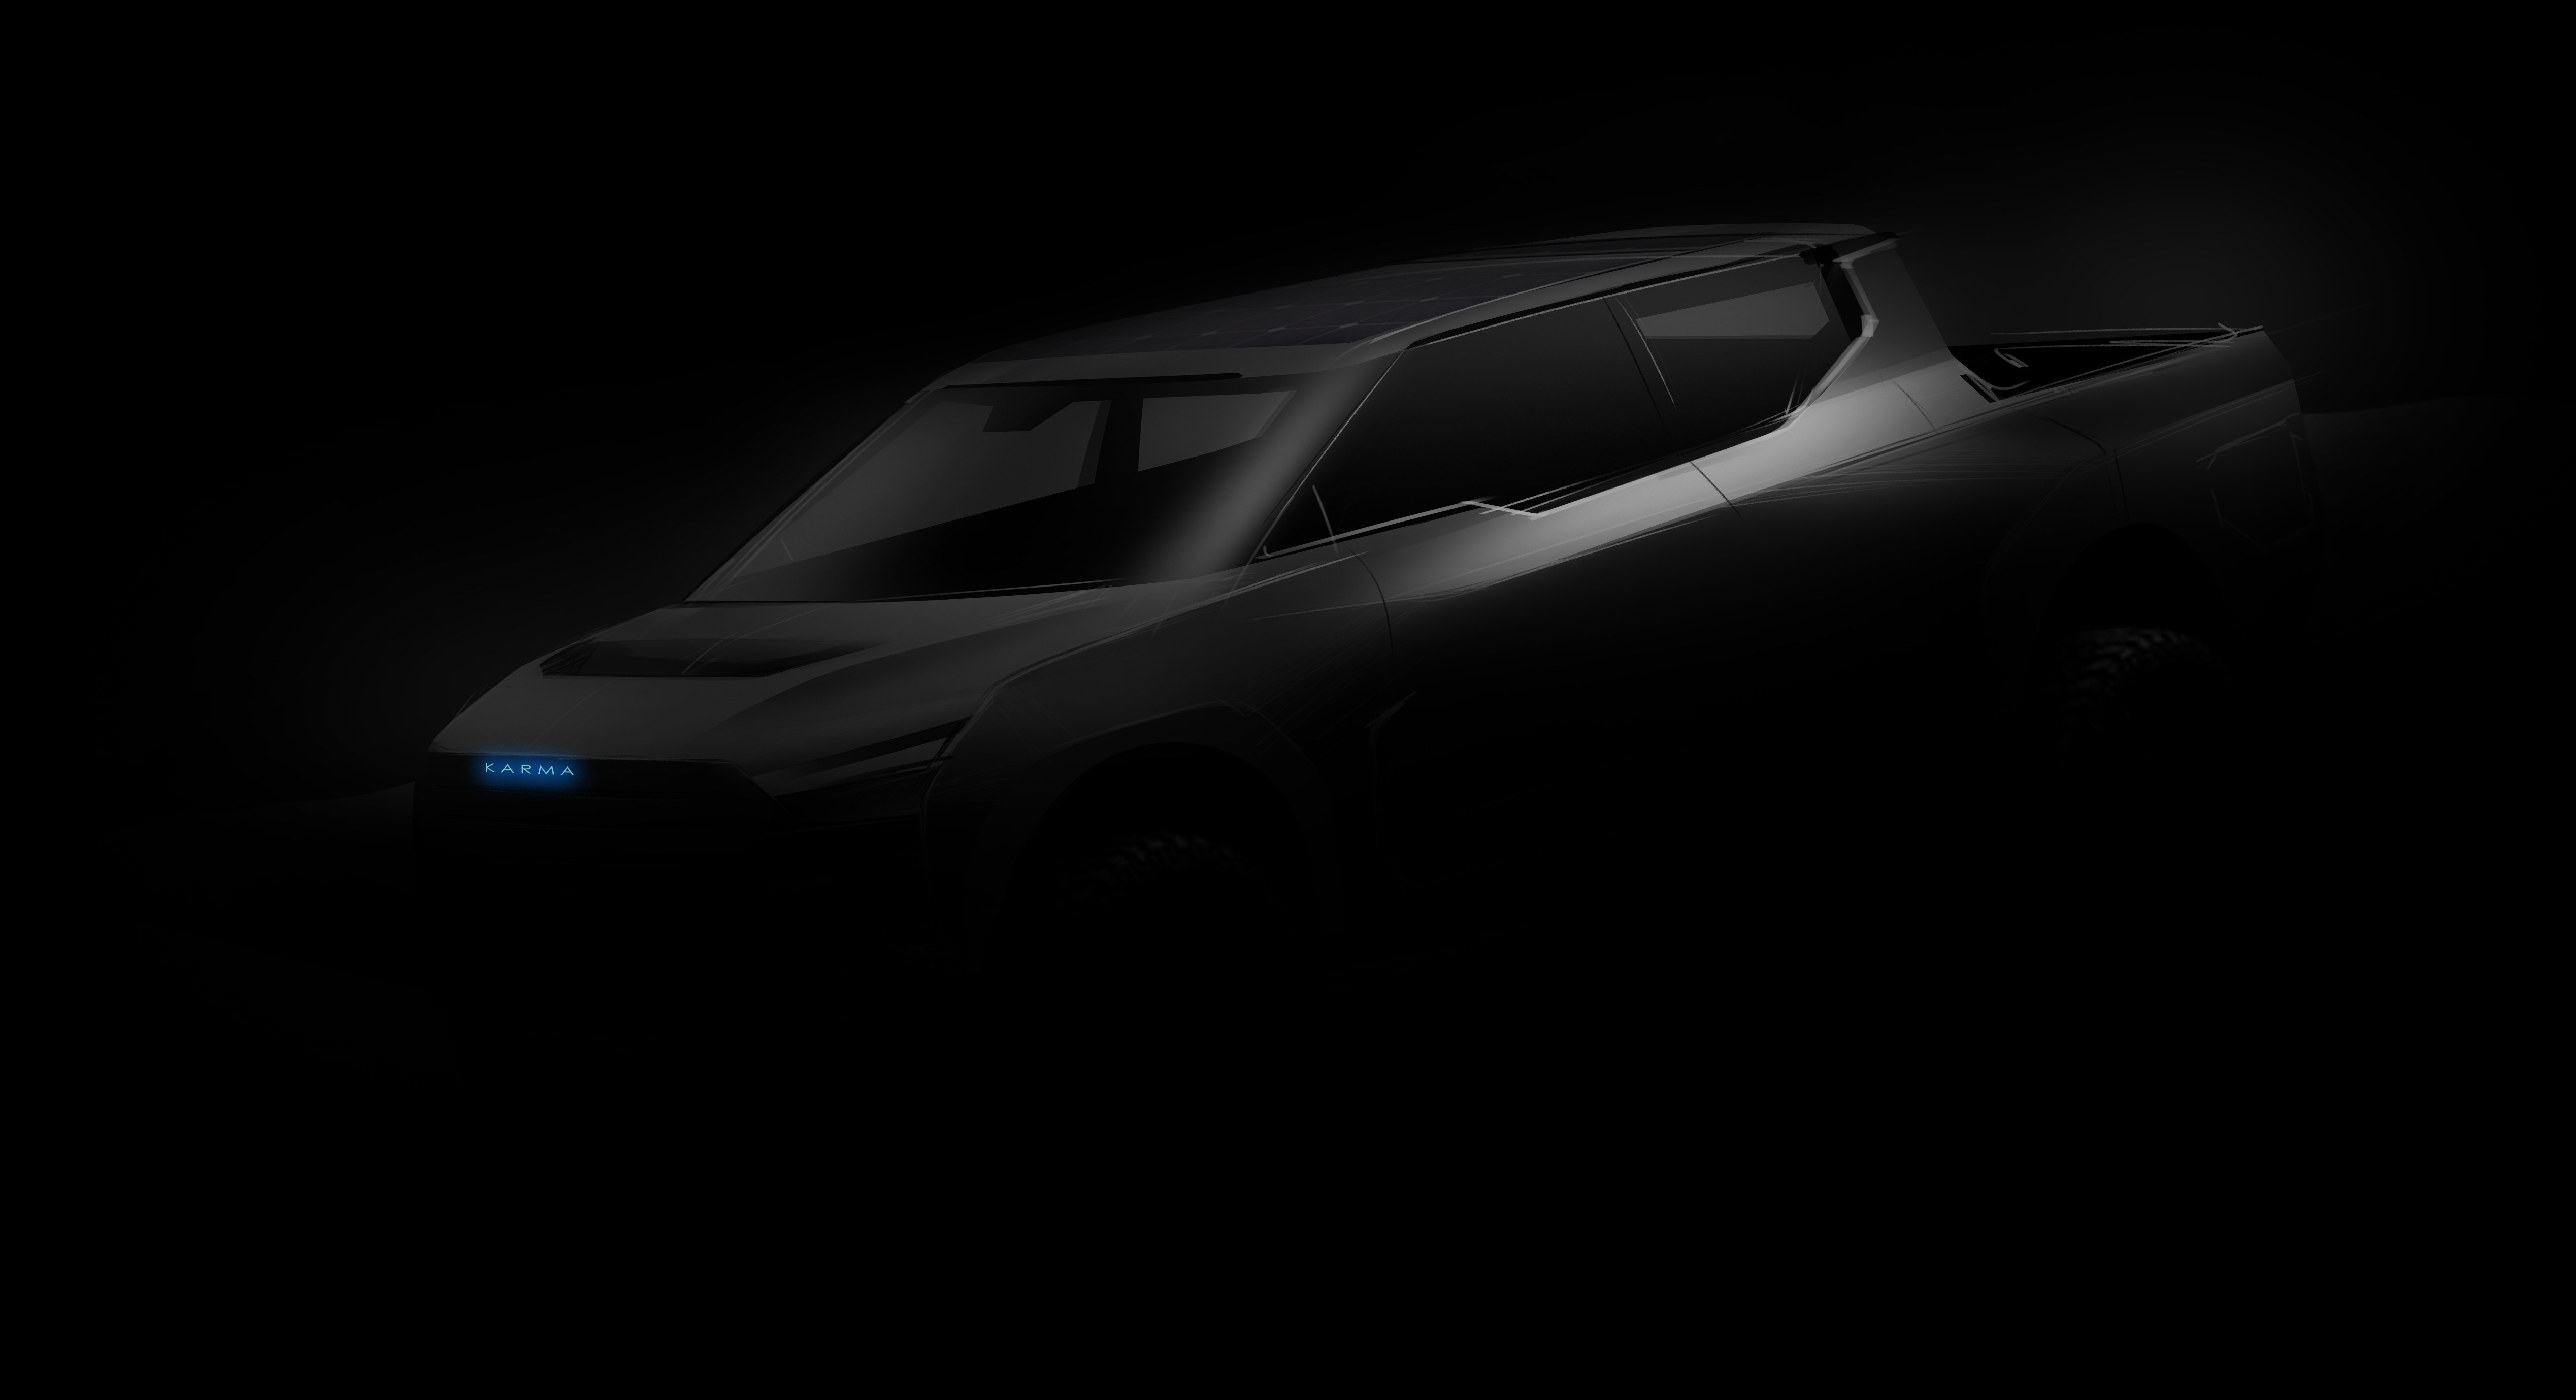 Karma Automotive will reveal its electric pickup truck later this year